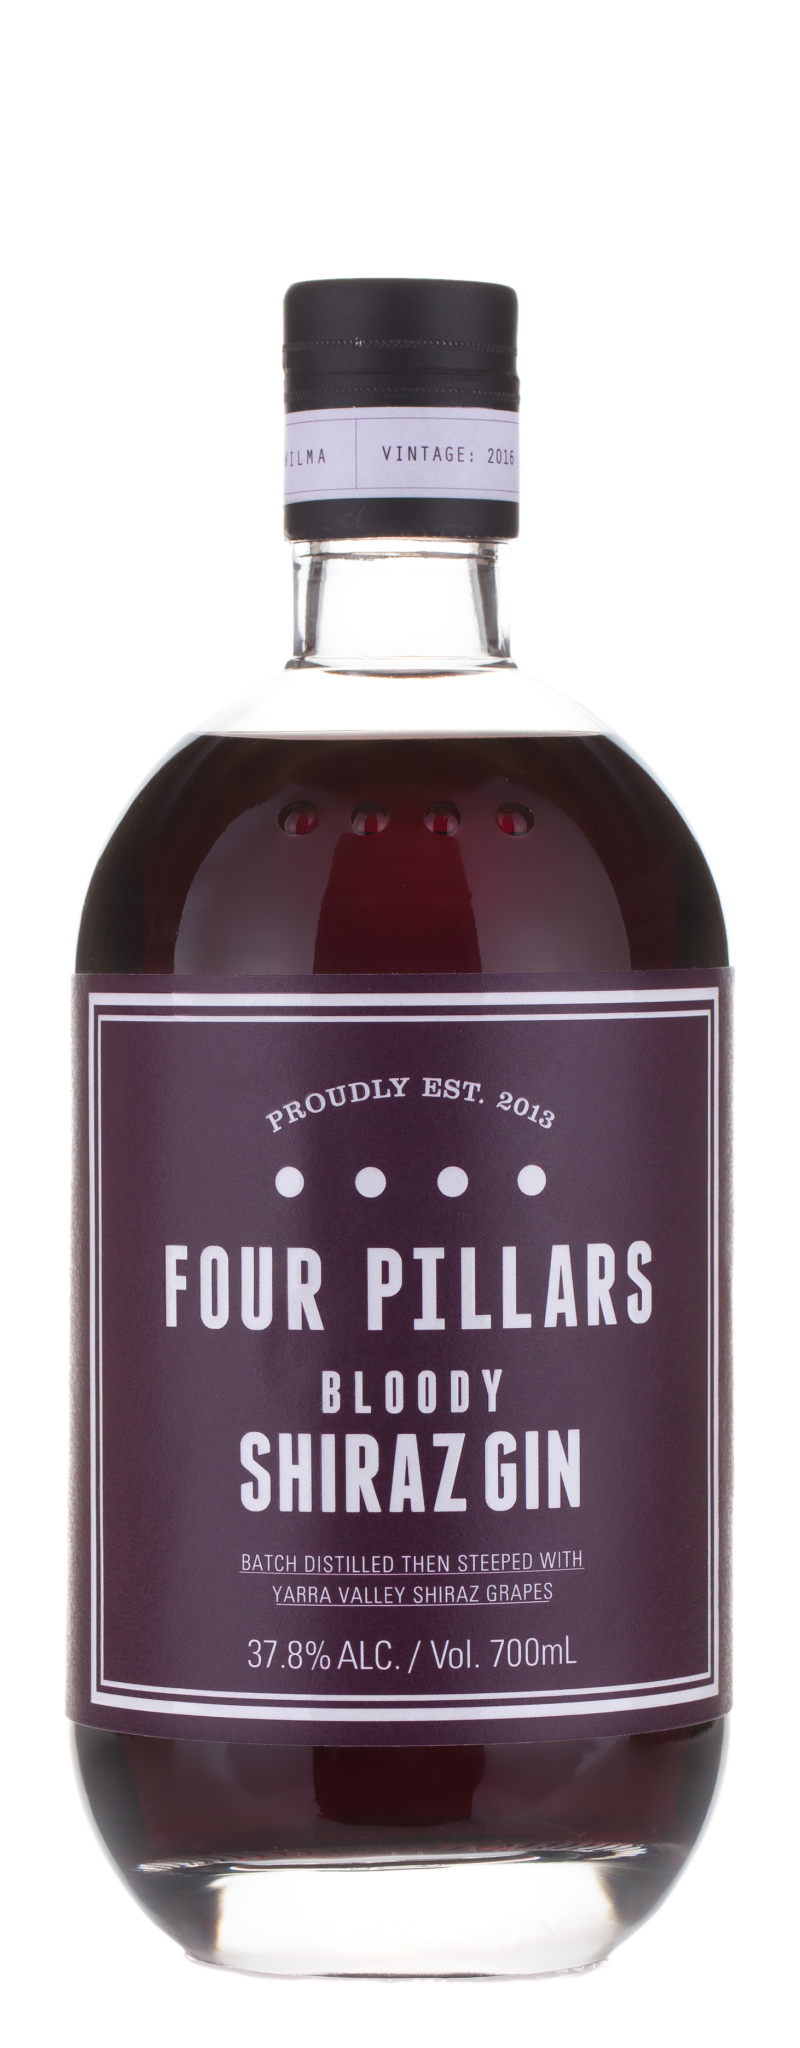 Four Pillars Bloody Shiraz Gin  - 700ml